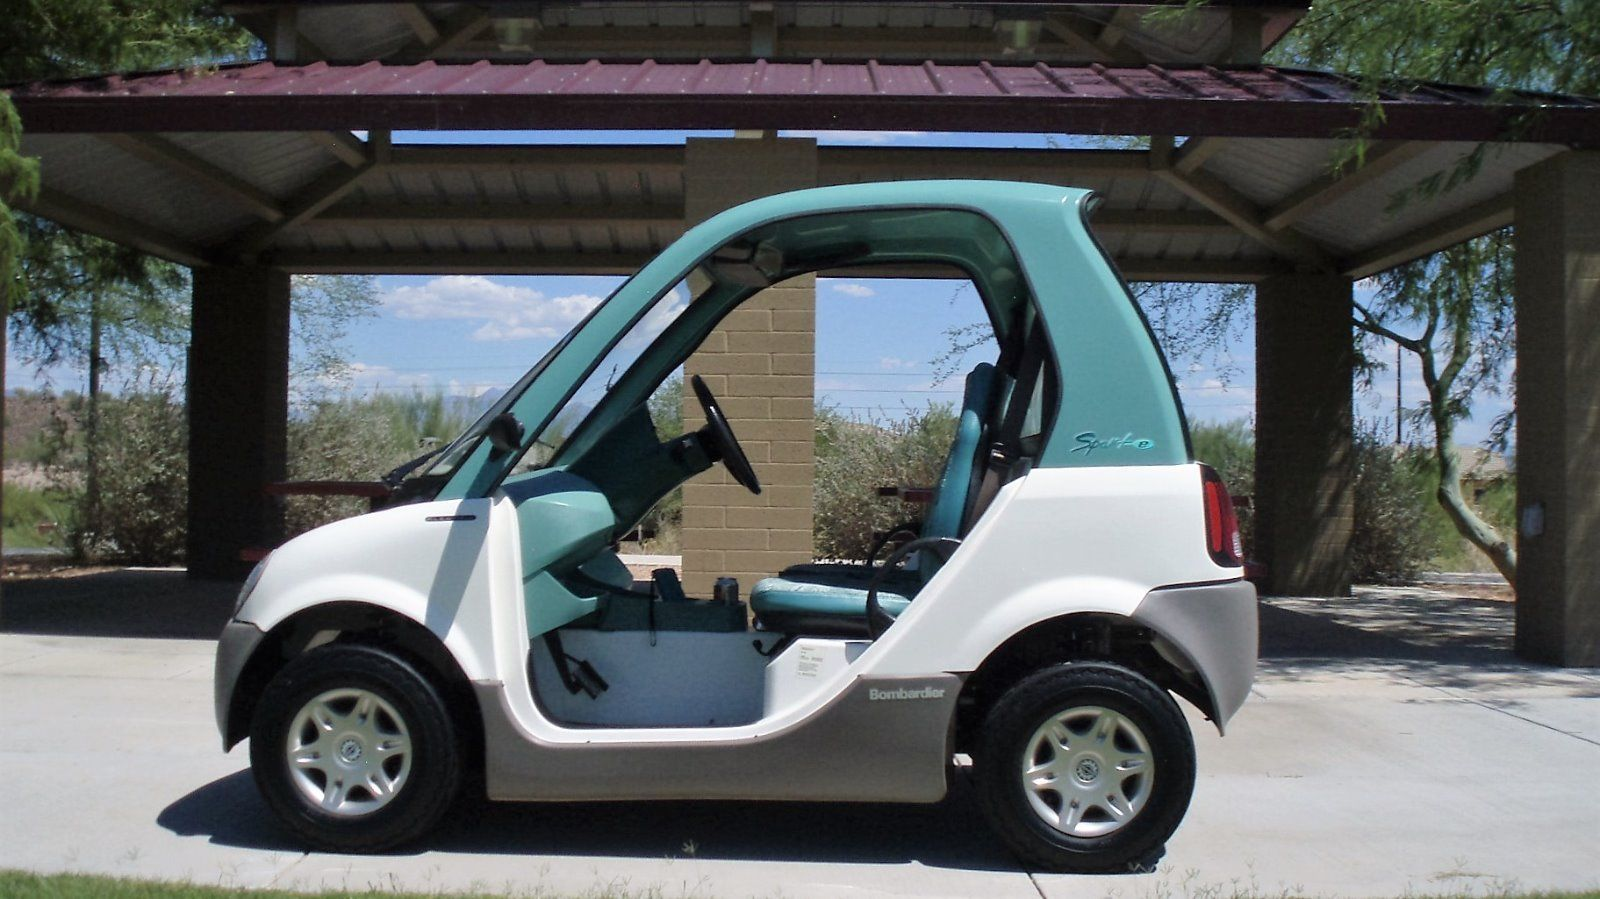 Ezgo Electric Golf Cart >> Bombardier NEV Golf Cart for sale